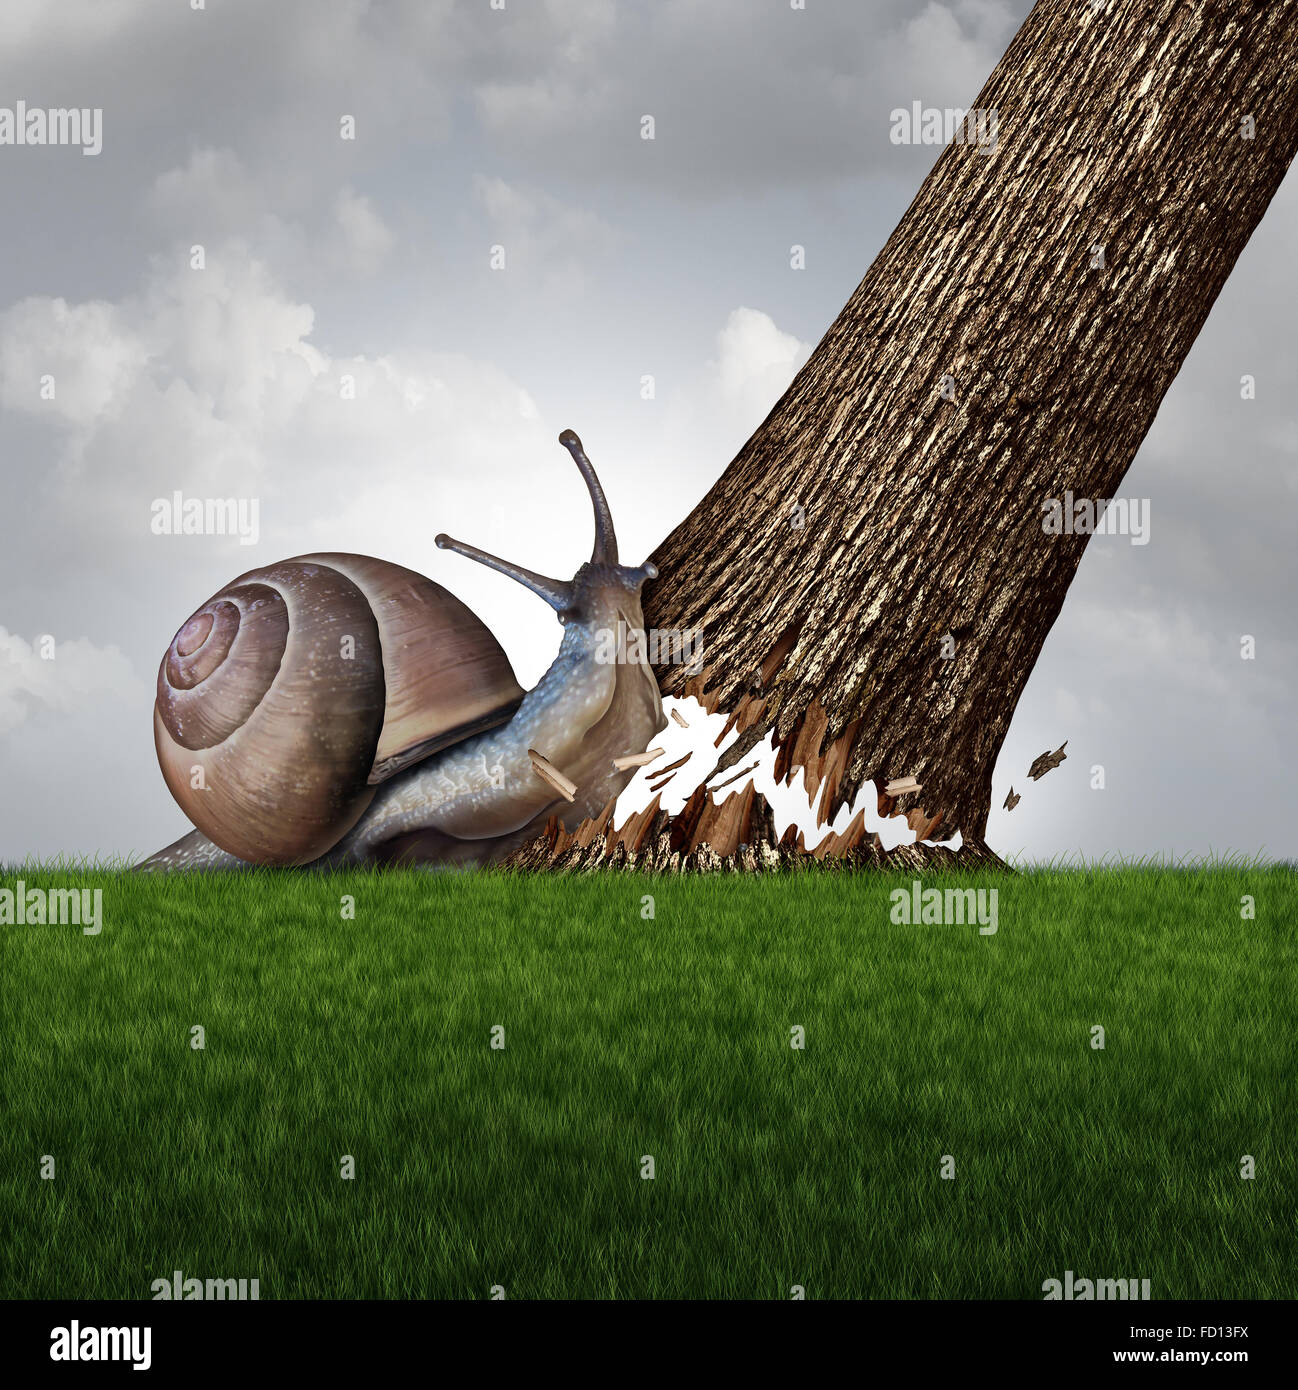 Strength concept as a snail pushing down a large tree trunk as a business success metaphor for the power of motivation - Stock Image